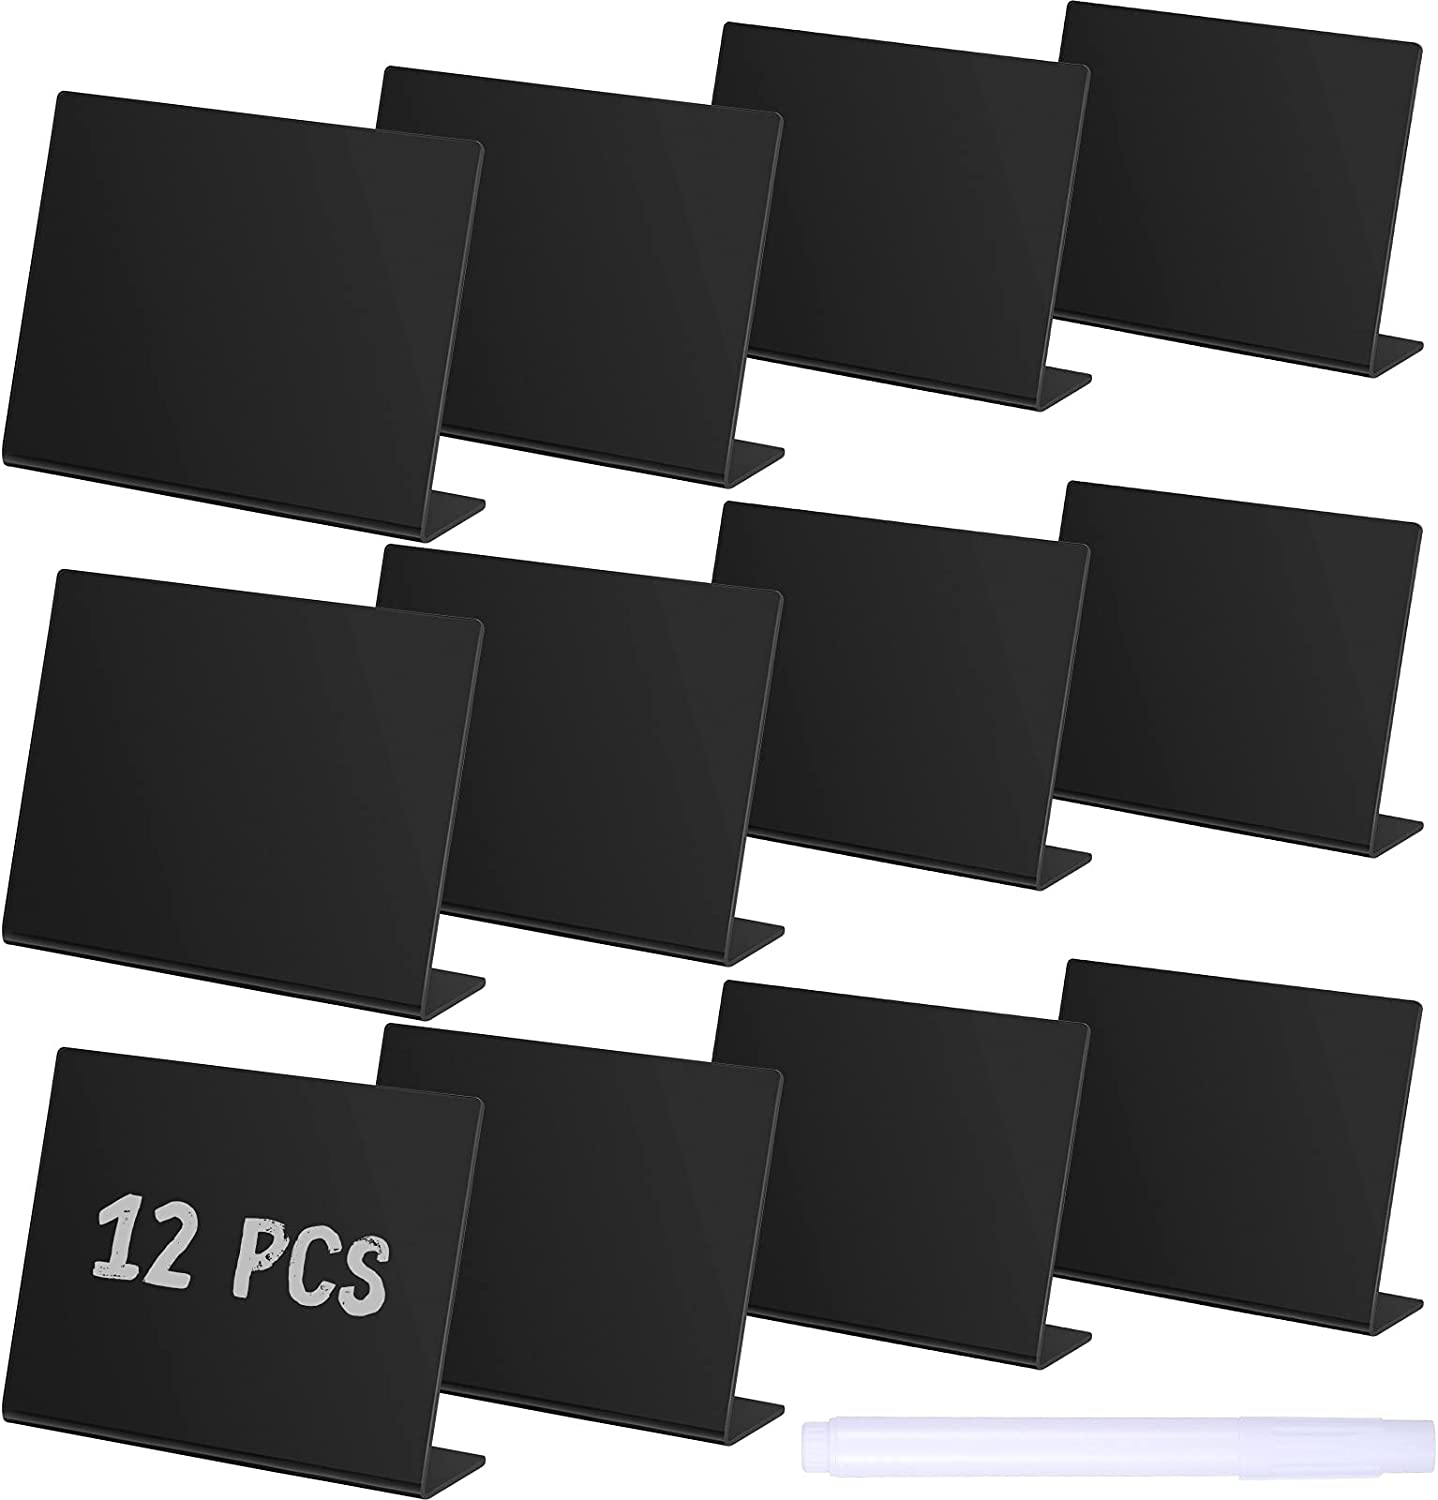 12 Pieces Mini Chalkboard Table Tent Sign Chalkboard Buffet Tags Chalkboard Food Label Sign with 2 Pieces Erasable Chalk Marker for Weddings Birthday Parties Food Table Tents